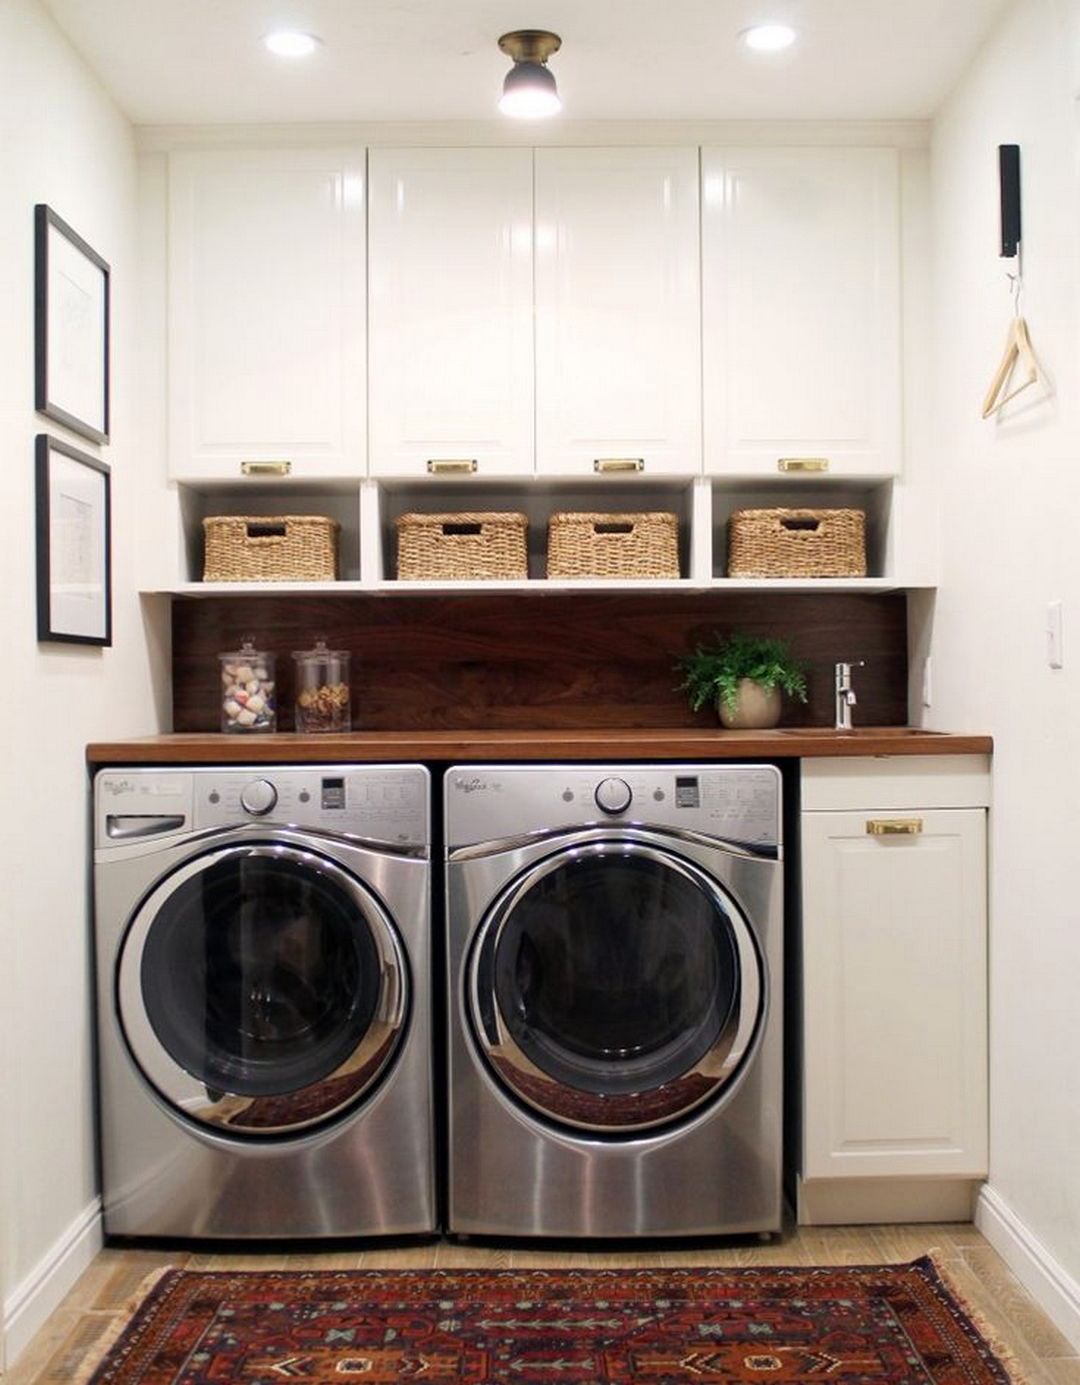 57 Nice Laundry Room Interior Ideas | Gorgeous Interior Ideas ... Laundry Room Ideas Home Design Html on cute ideas, laundry design ideas, game room home ideas, home dressing room ideas, home bar room ideas, home printing room ideas, home store room ideas, home coffee shop room ideas, home pool room ideas, home tv room ideas, home sauna room ideas, built in room ideas, home lounge room ideas, home storage room ideas, home family room ideas, home library room ideas, home gym room ideas, home recreation room ideas, home laundry accessories,